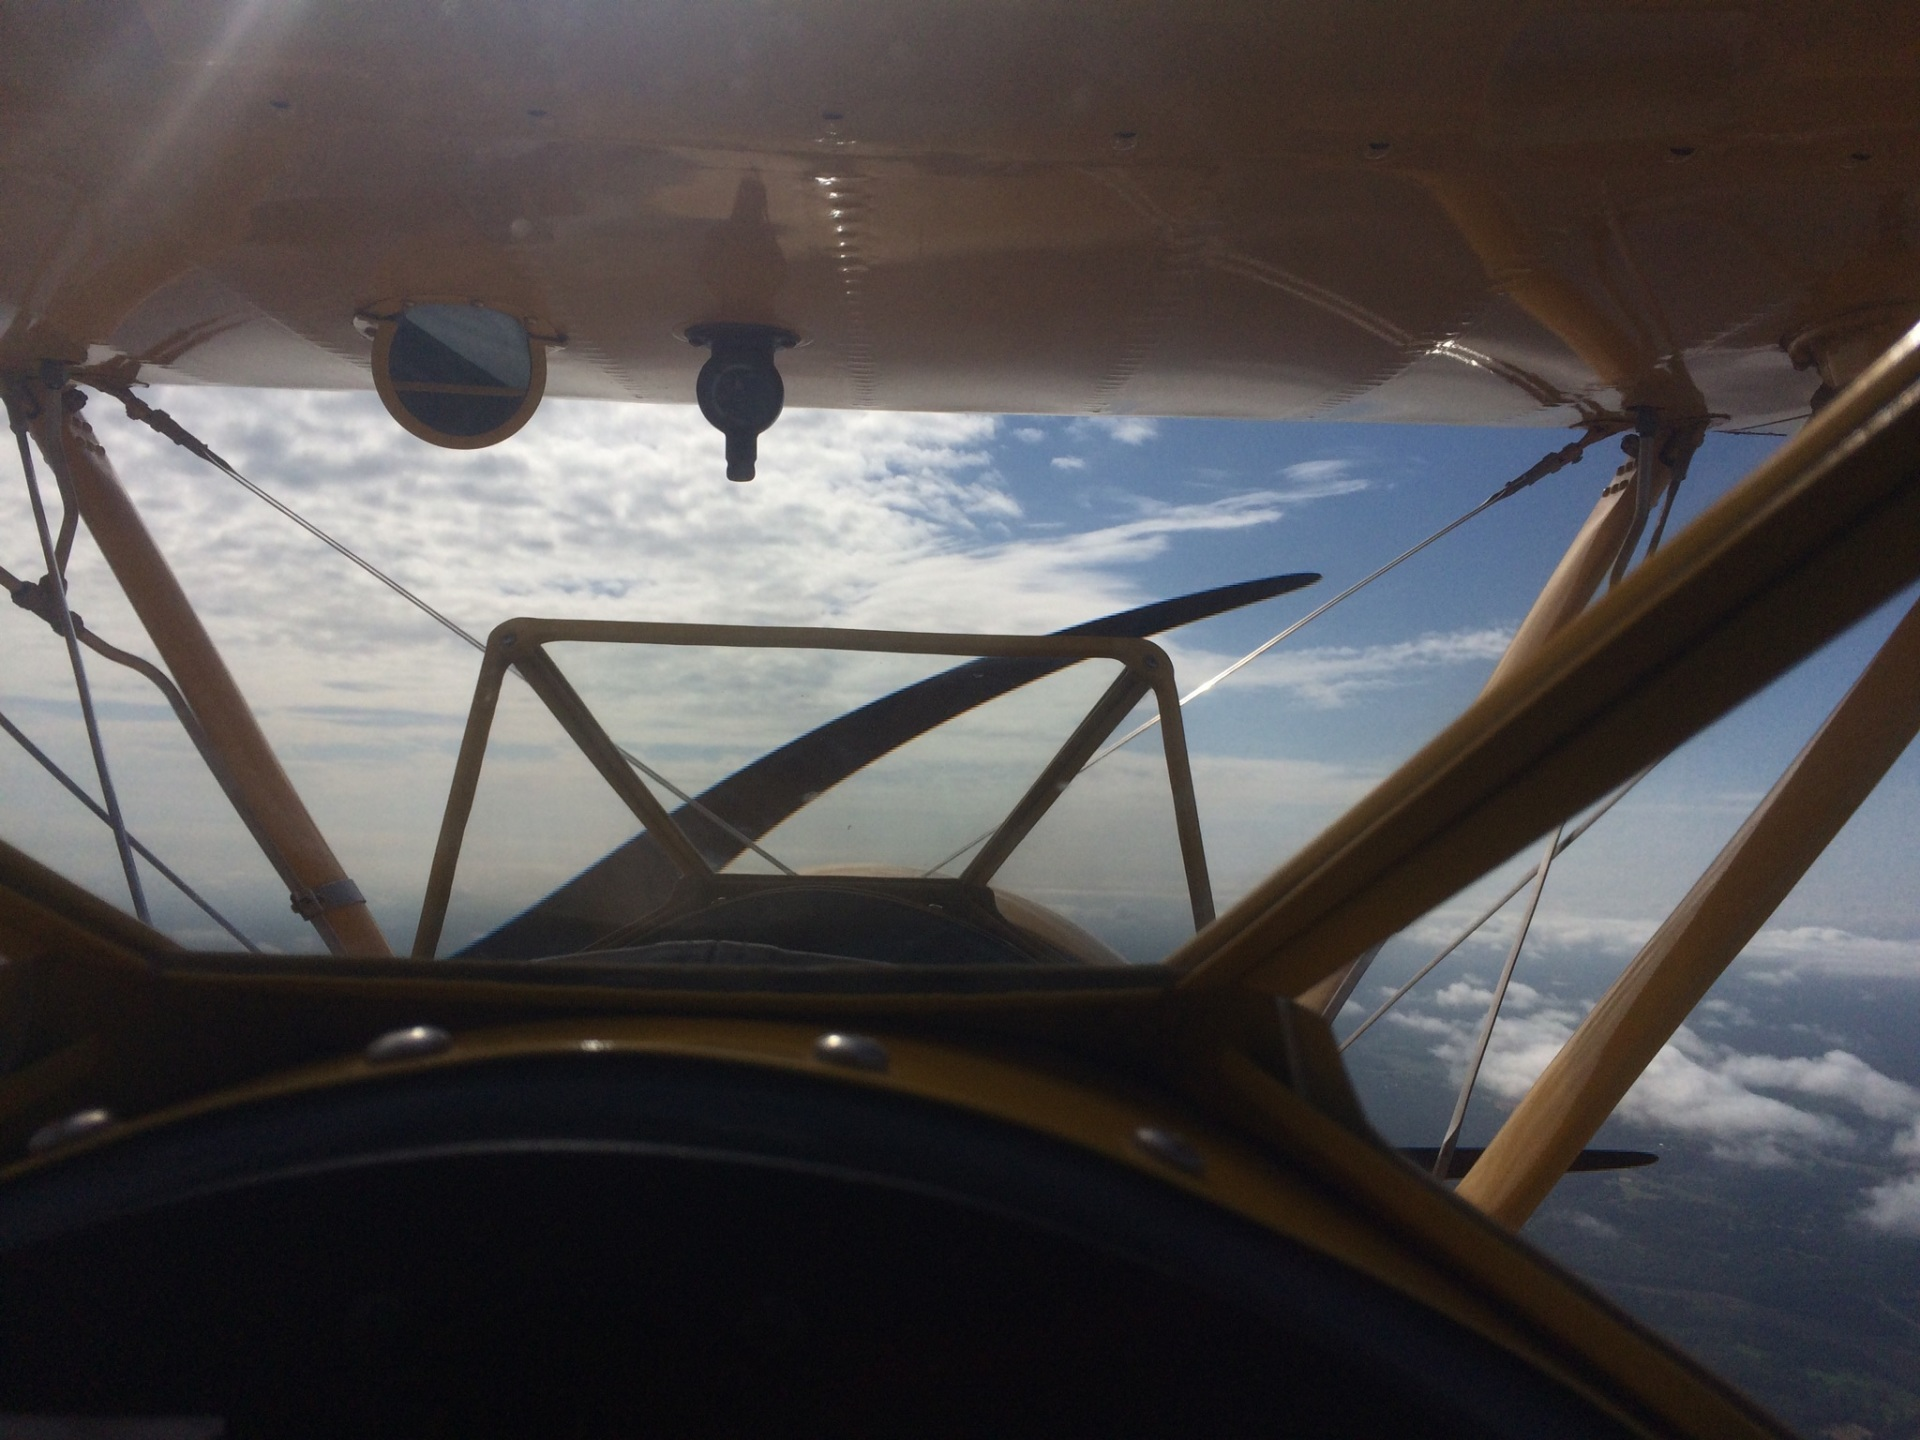 A view from the pilot seat